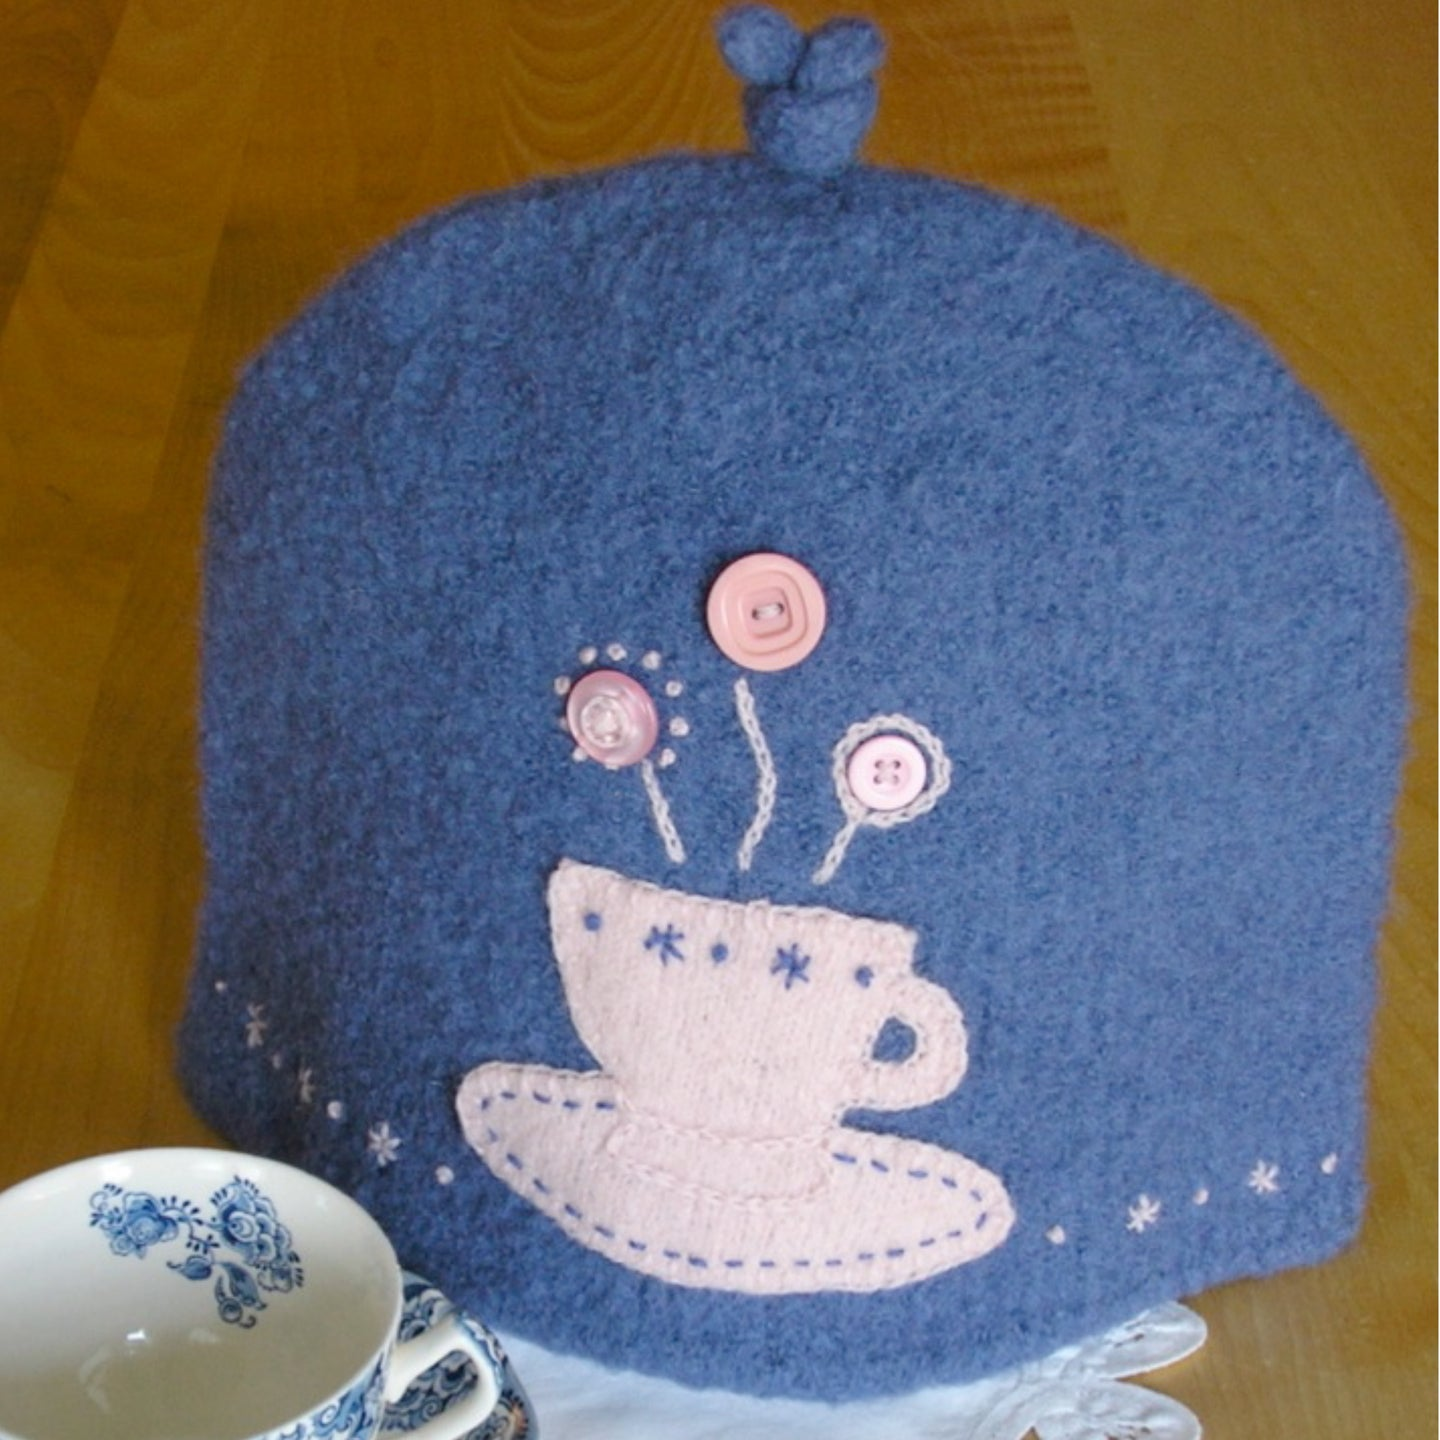 Marie Mayhew's Woolly 6-Cup Tea Cozy pattern